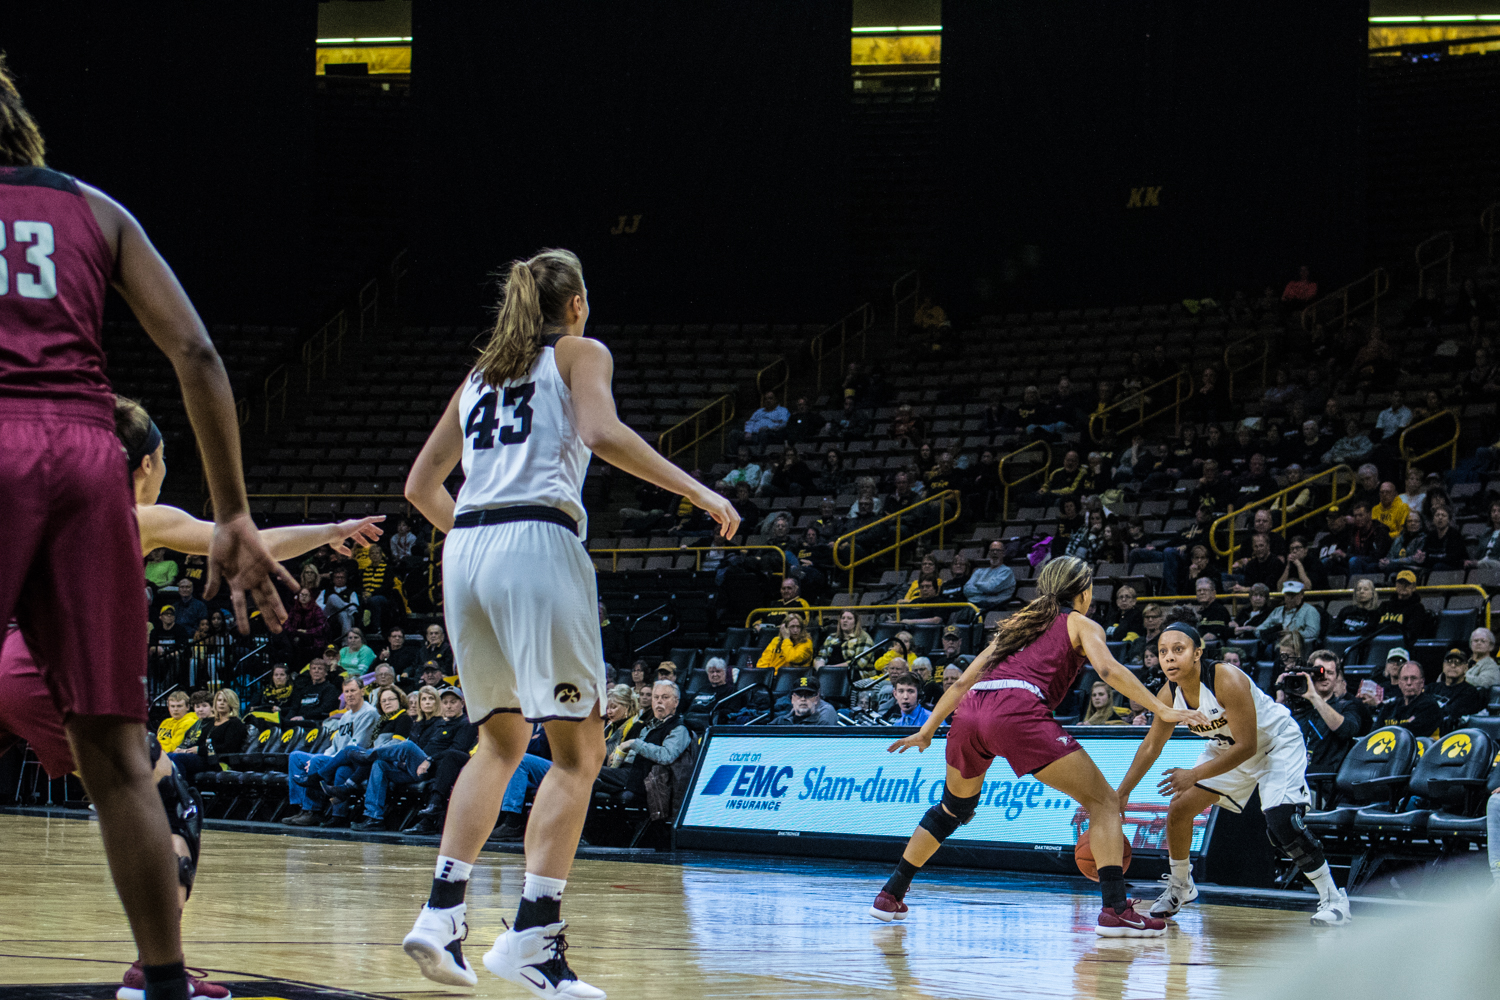 Iowa+guard+Tania+Davis+dribbles+the+ball+during+a+women%27s+basketball+game+between+Iowa+and+North+Carolina+Central+at+Carver-Hawkeye+Arena+on+Saturday%2C+Nov.+17%2C+2018.+The+Hawkeyes+devastated+the+visiting+Eagles%2C+106-39.+